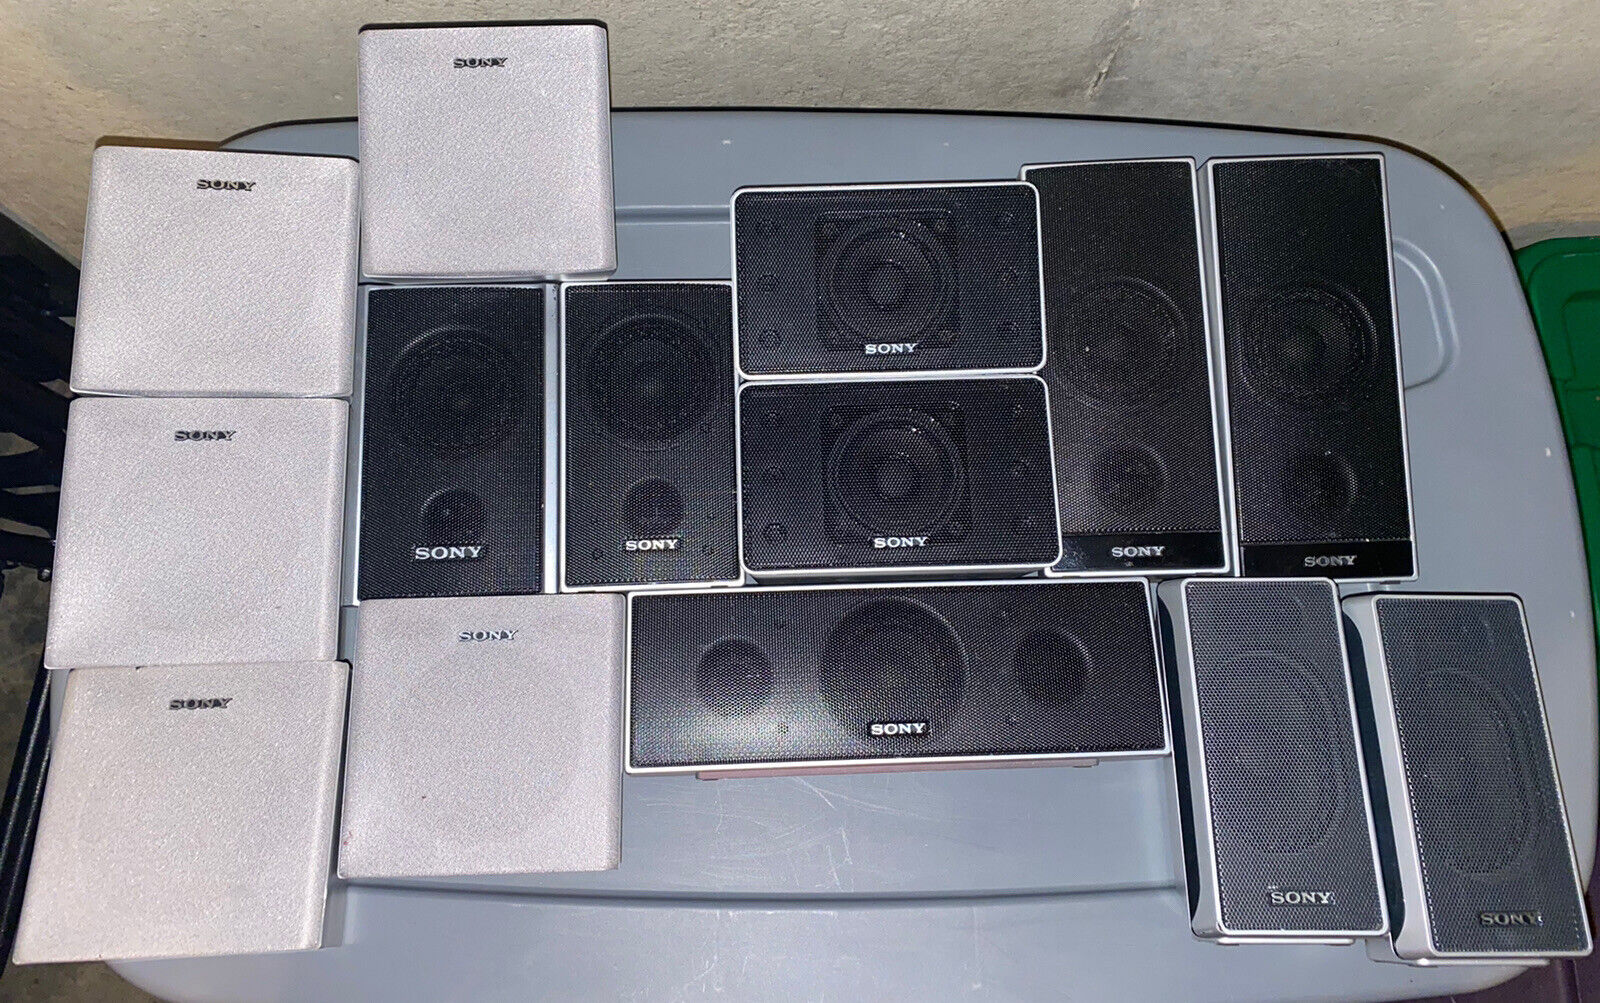 Sony Universal Surround Sound Satellite Stereo Speakers Lot Of 14 Tested/Works. Buy it now for 69.99